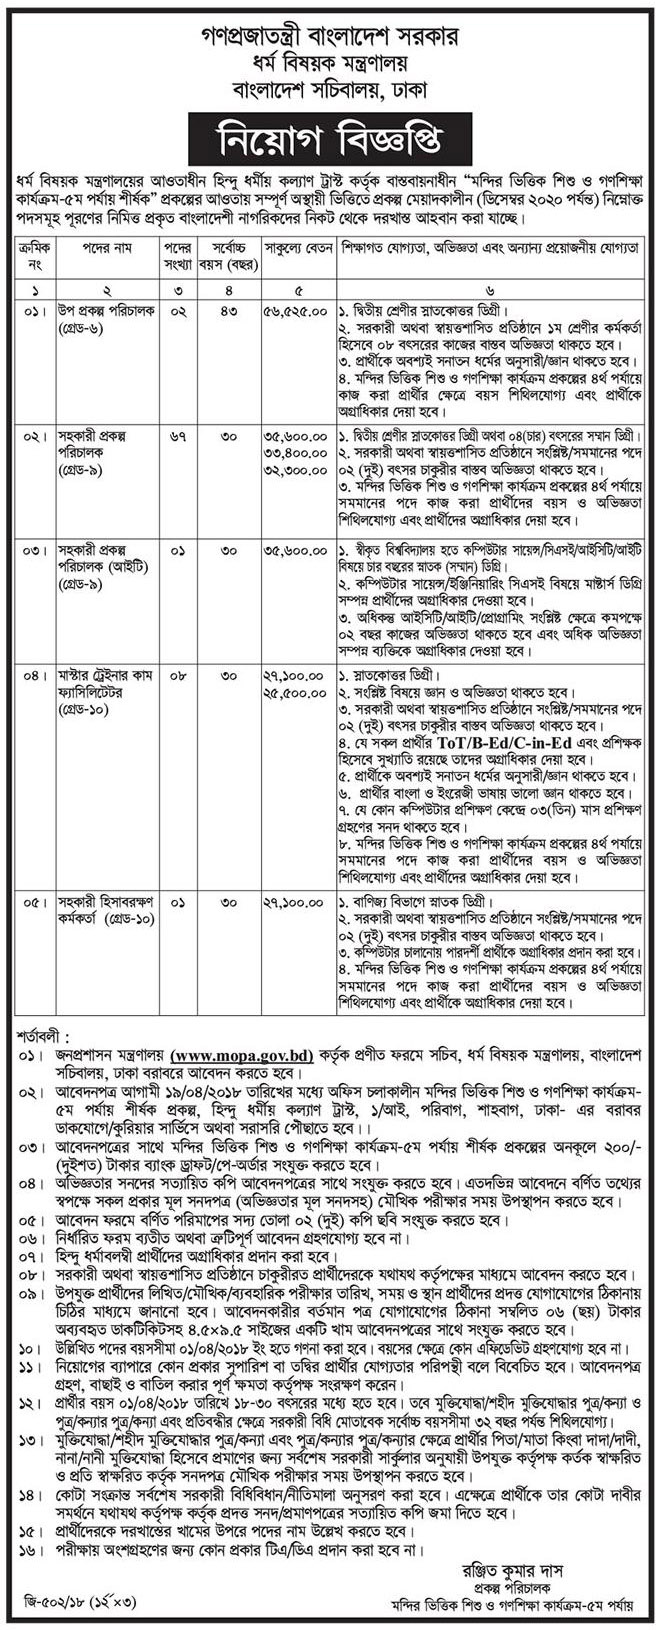 Ministry of Religious Affairs Job Circular 2018